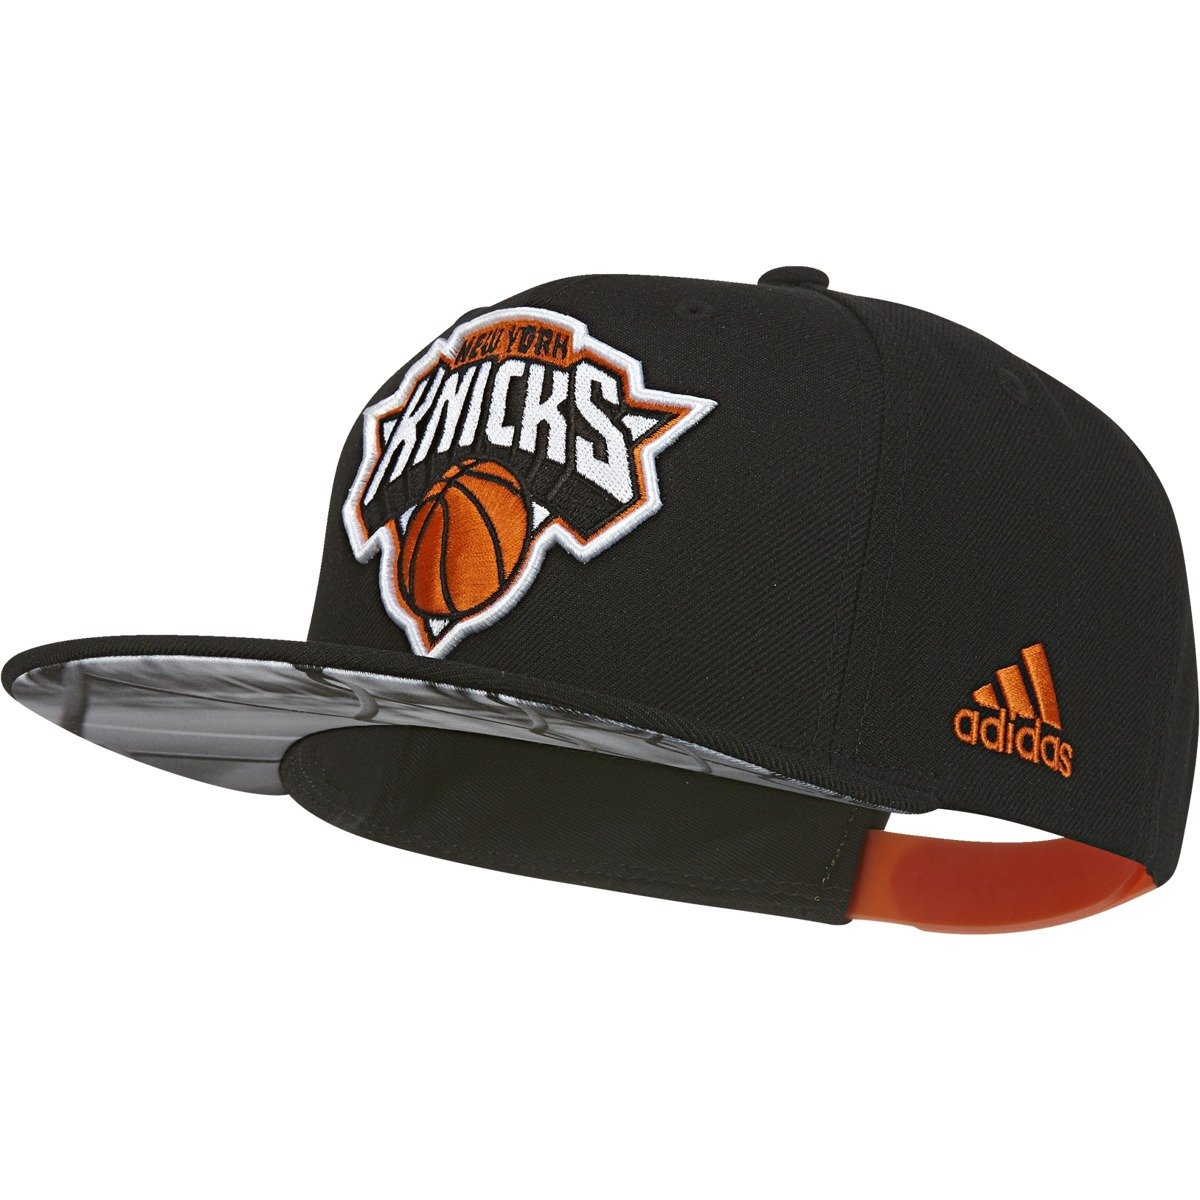 NBA Adidas New York Knicks Snapback Cap - BK3042 ...